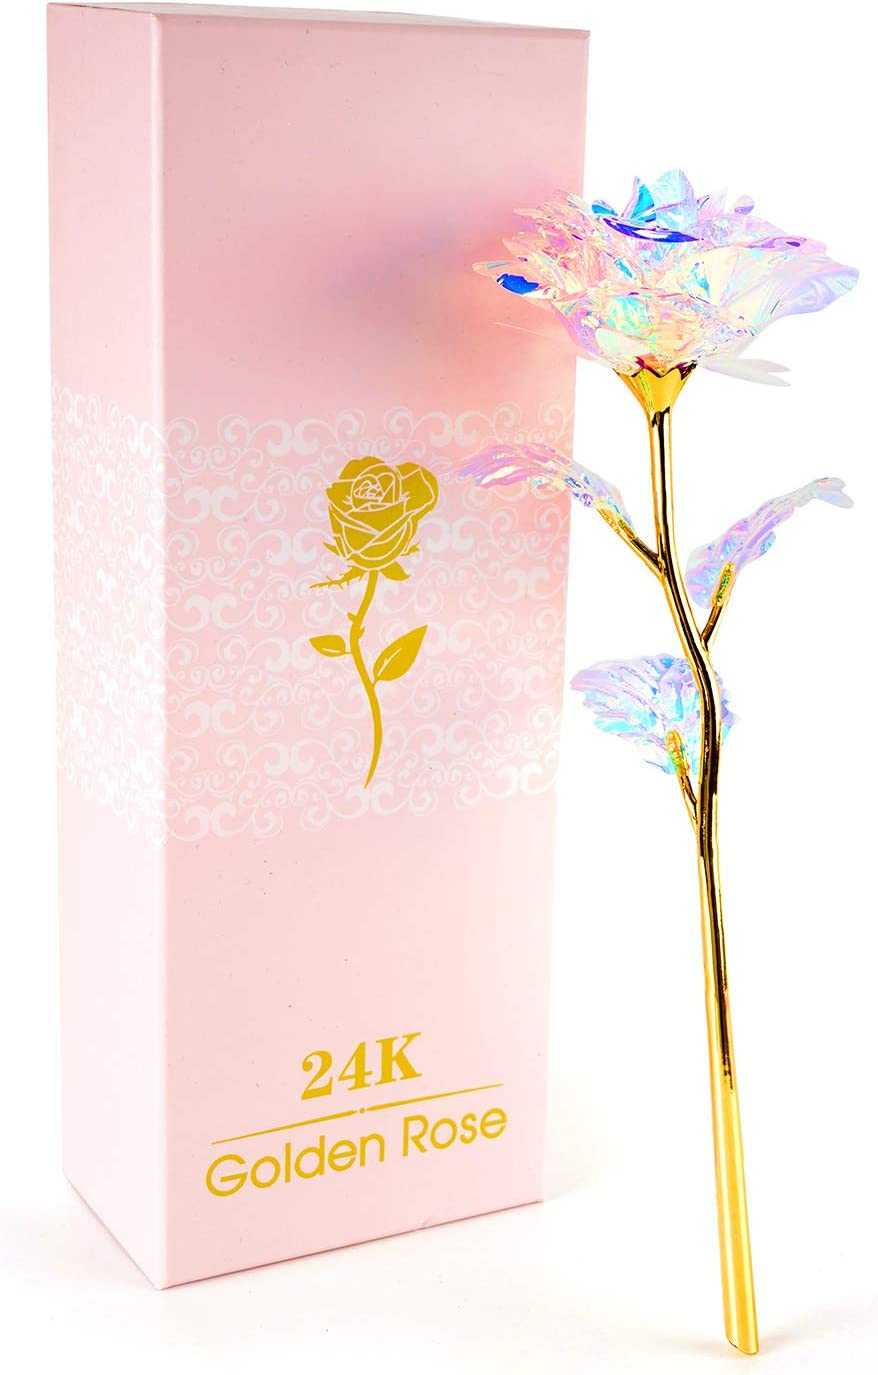 BEFINR 24K Colorful Rose Artificial Flower Unique Gifts Valentine's Day Thanksgiving Mother's Day Girl's Birthday, Best Gifts for Her for Girlfriend Wife Women